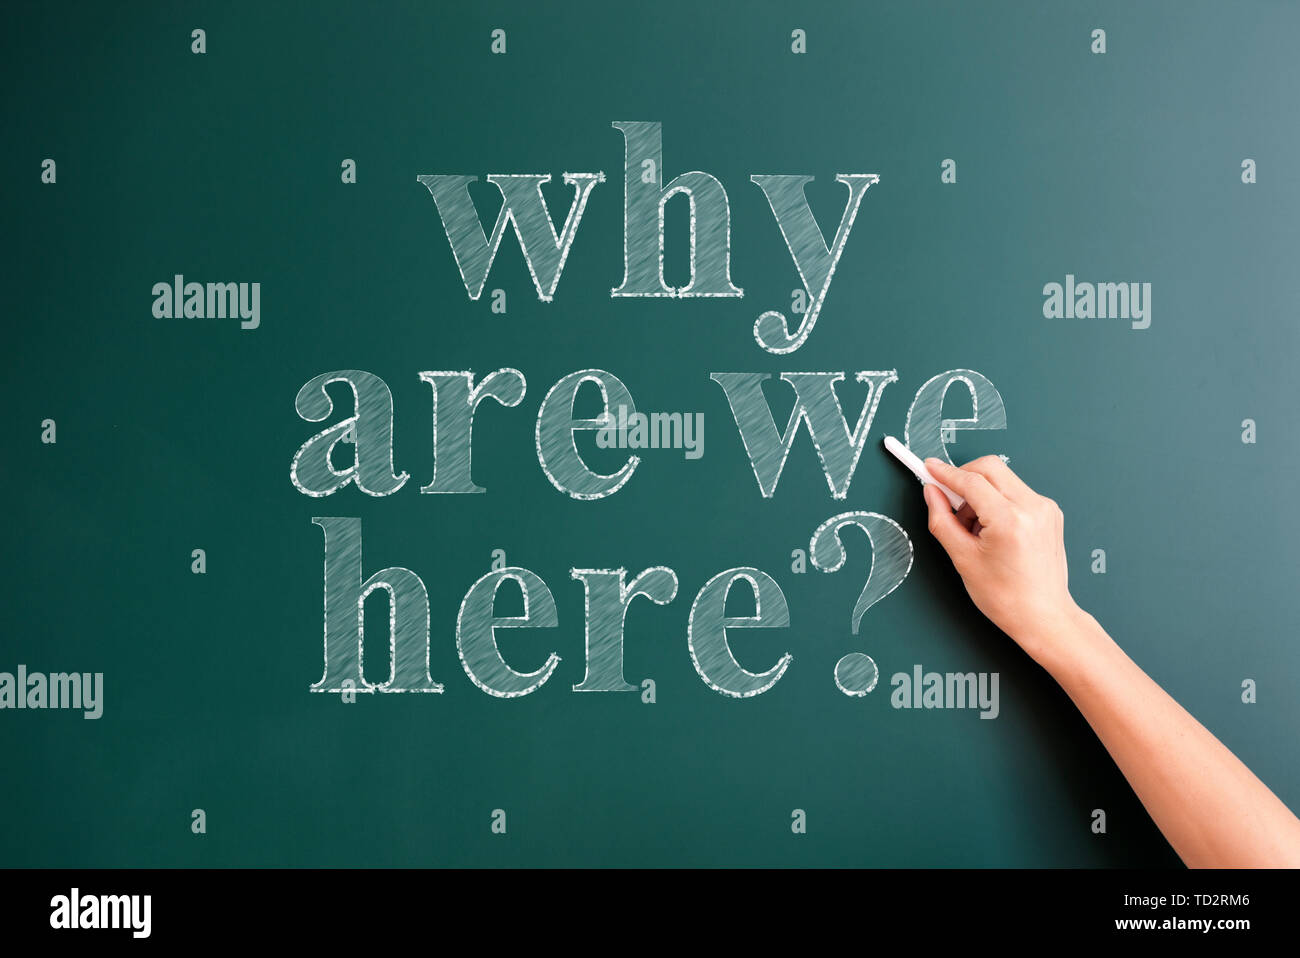 'why are we here' written on blackboard - Stock Image